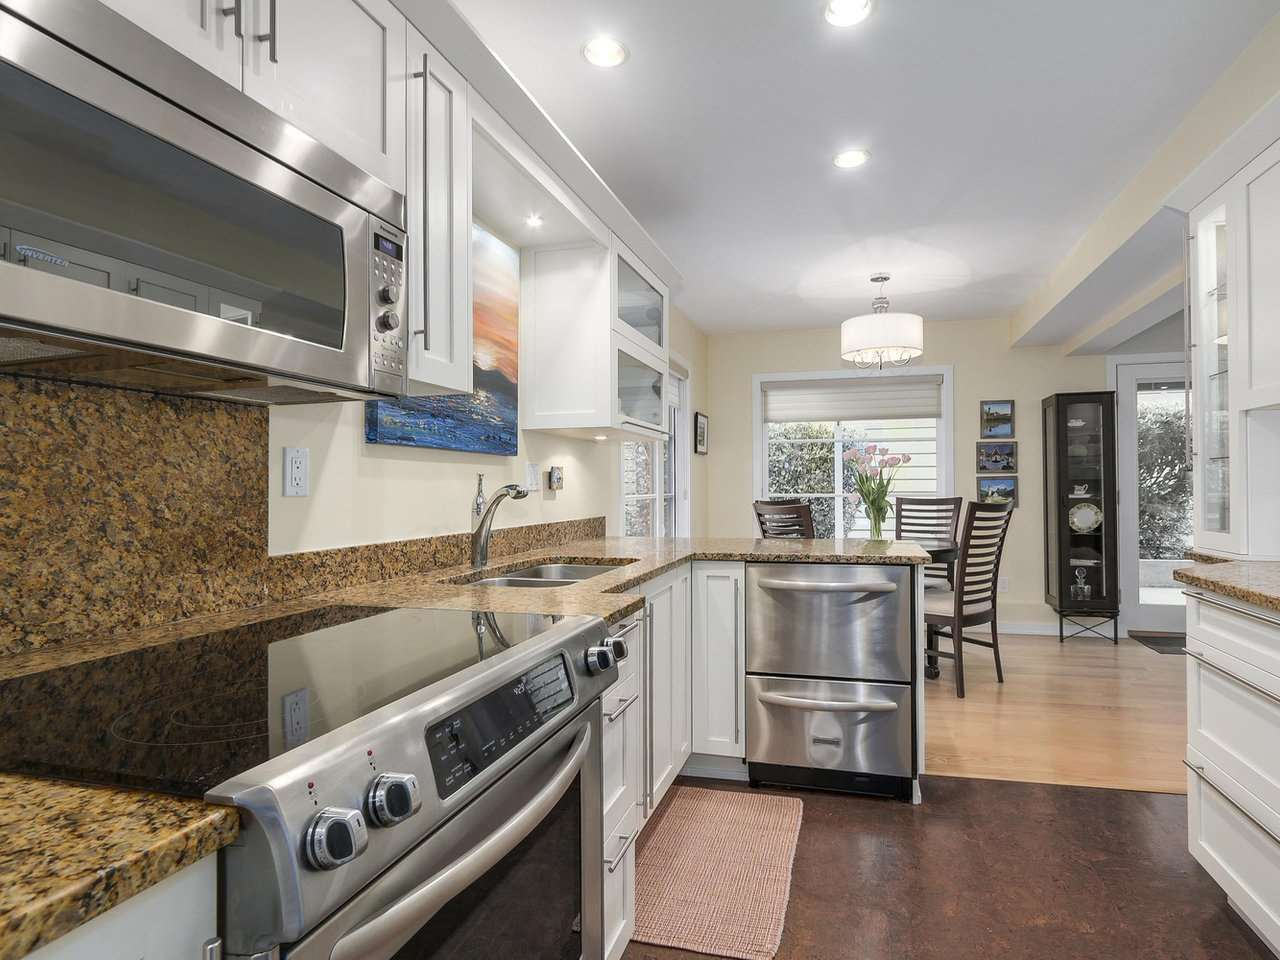 Downstairs Kitchen is also white shaker cabinets, stain less steel appliances, and granite counter tops. Downstairs offers its own separate full size laundry as well.